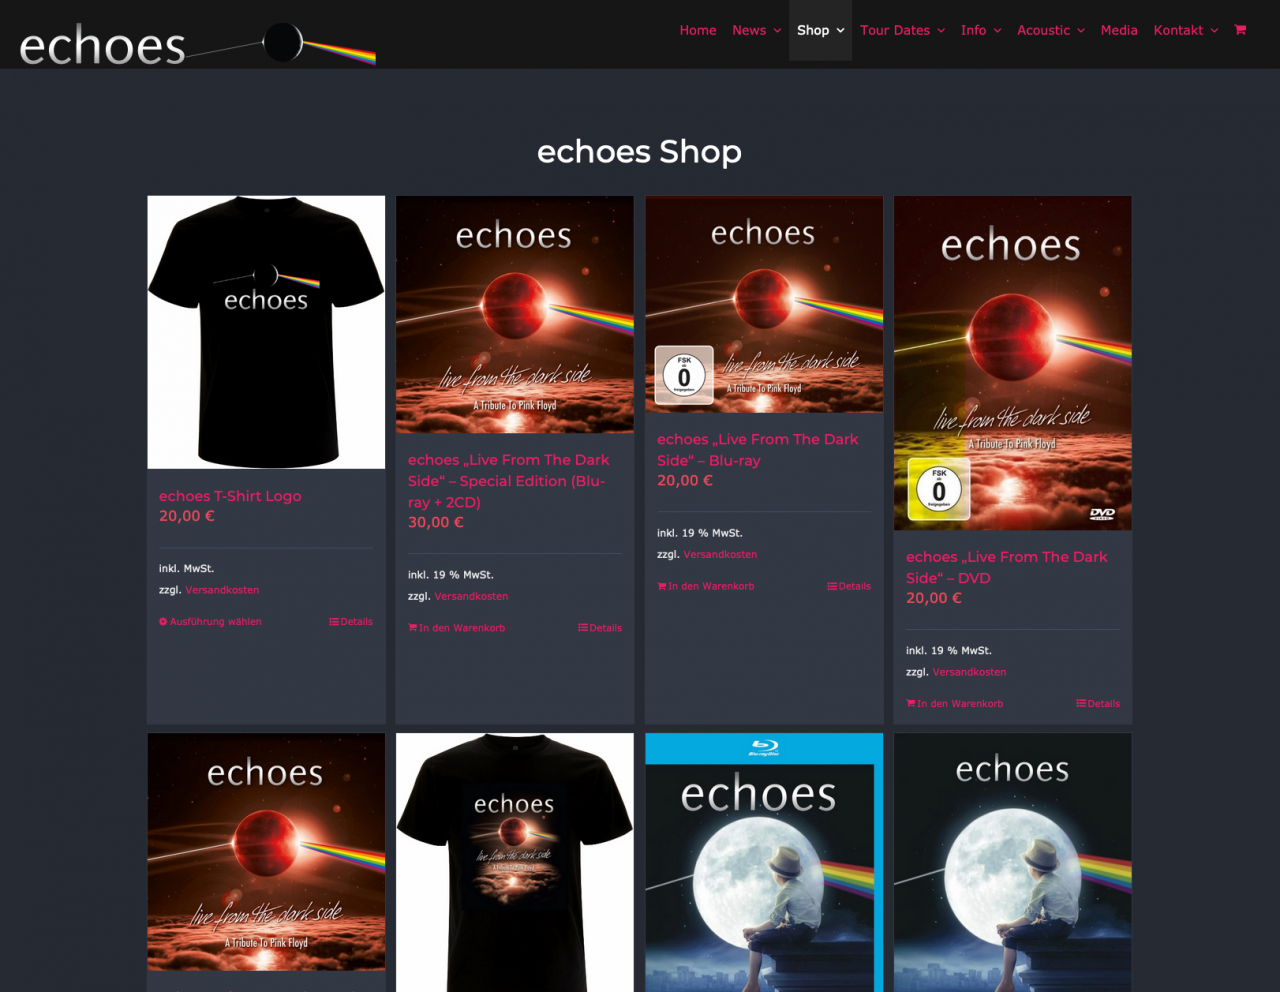 echoes webshop